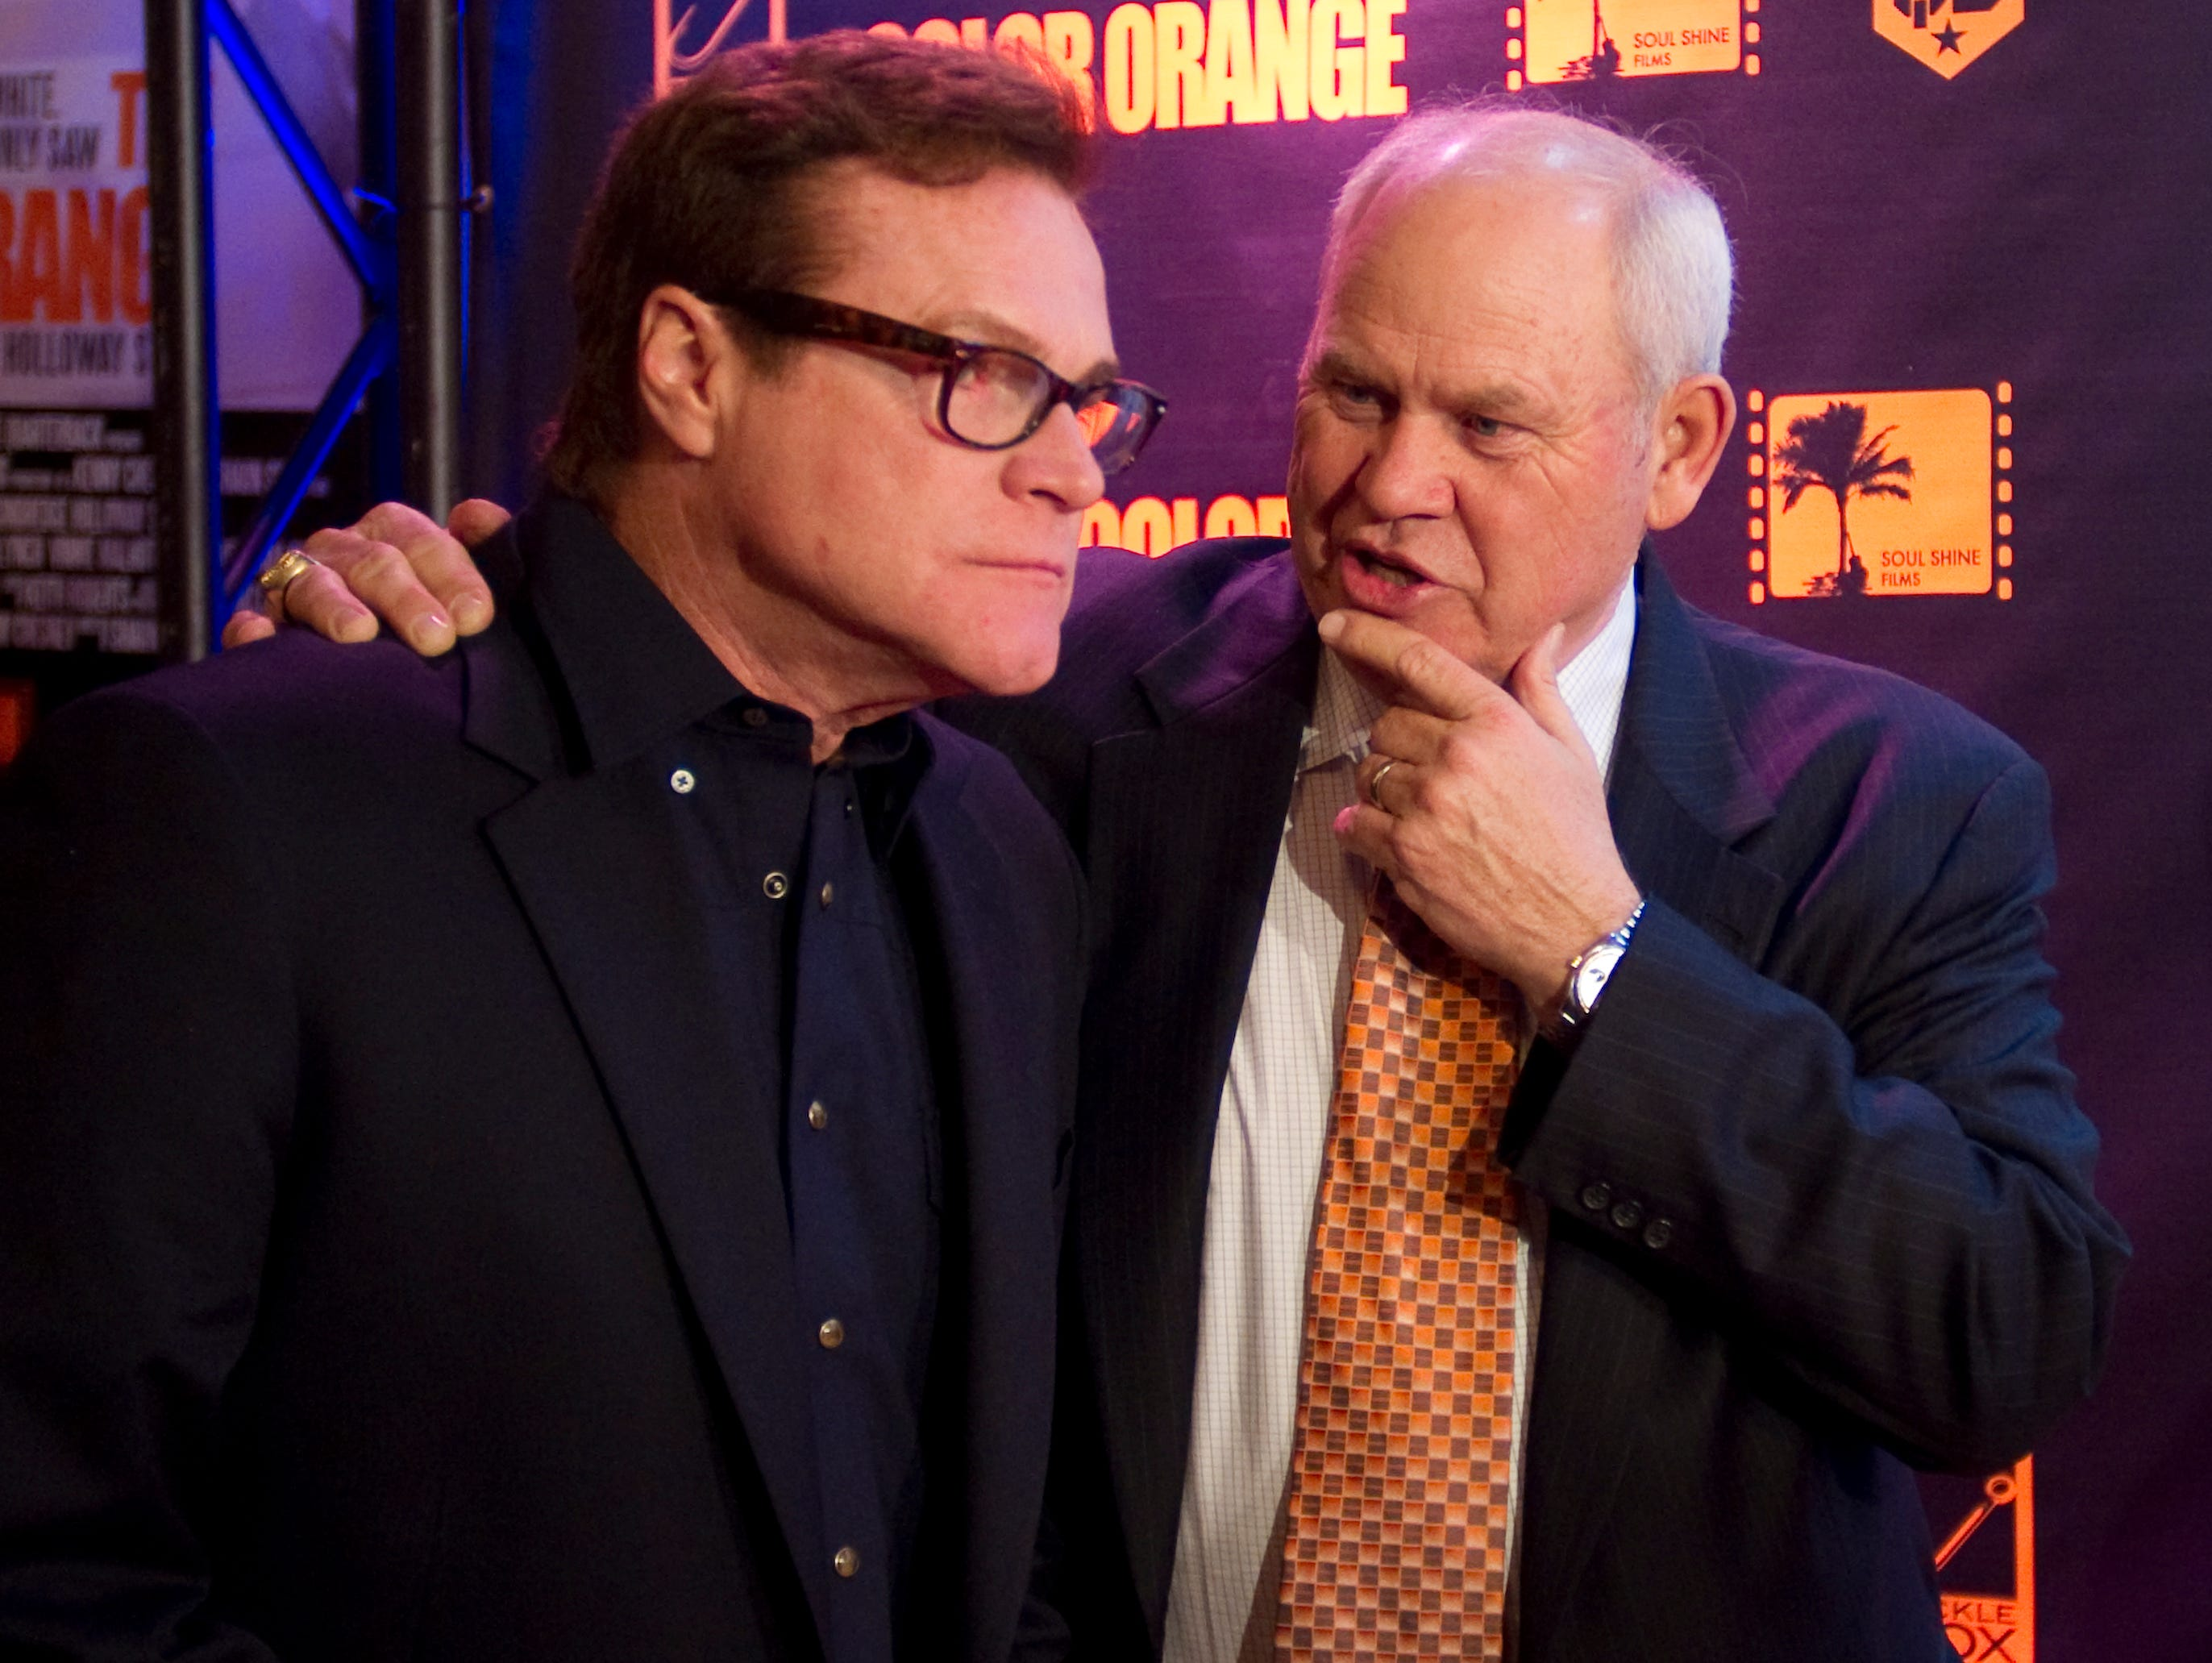 """Former Tennessee football coach Phillip Fulmer, right, chats with actor David Keith during the premier of """"The Color Orange: The Condredge Holloway Story"""" at the Tennessee Theatre on Feb. 16, 2011."""